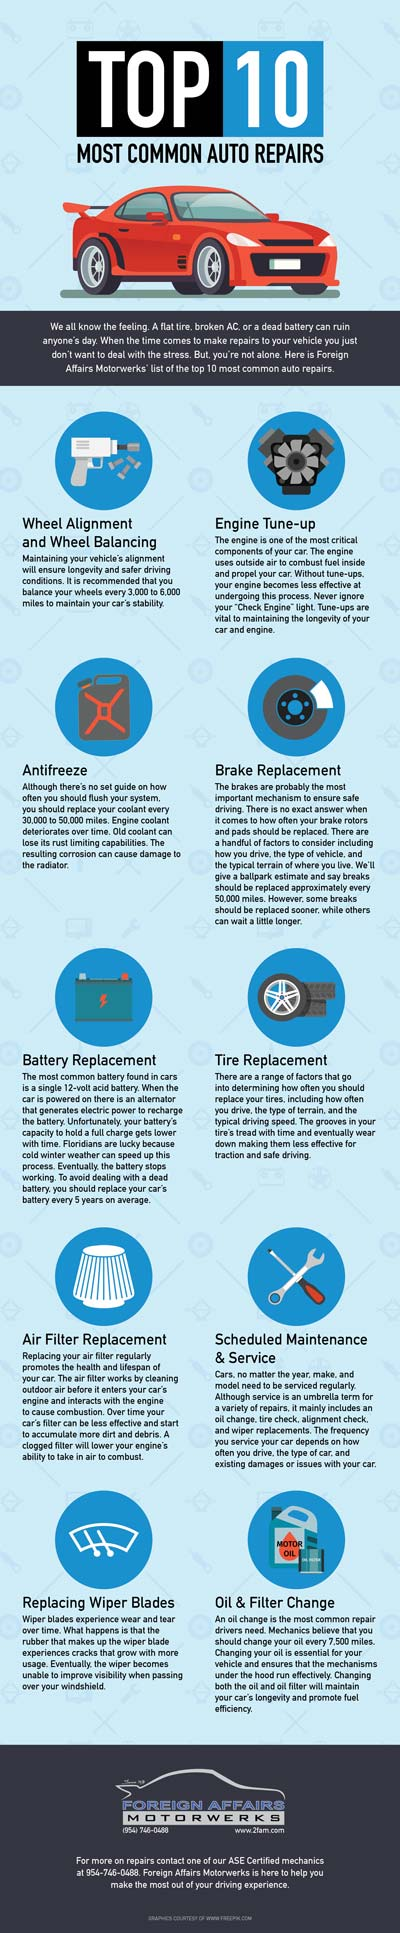 The Top 10 Most Common Auto Repairs Infographic